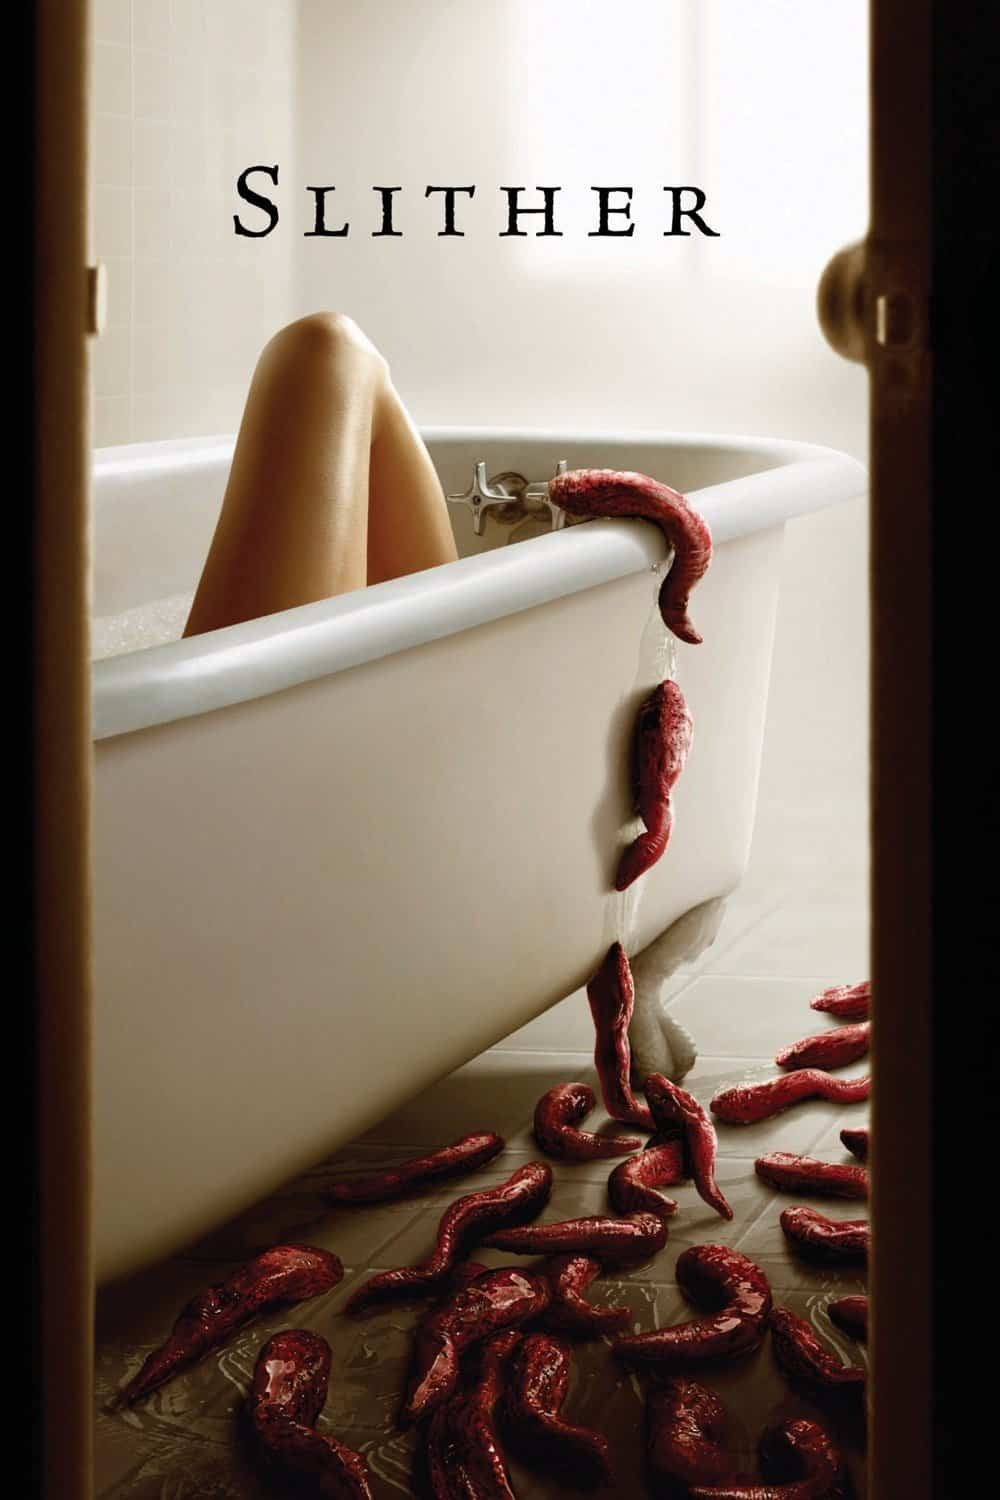 Slither, 2006